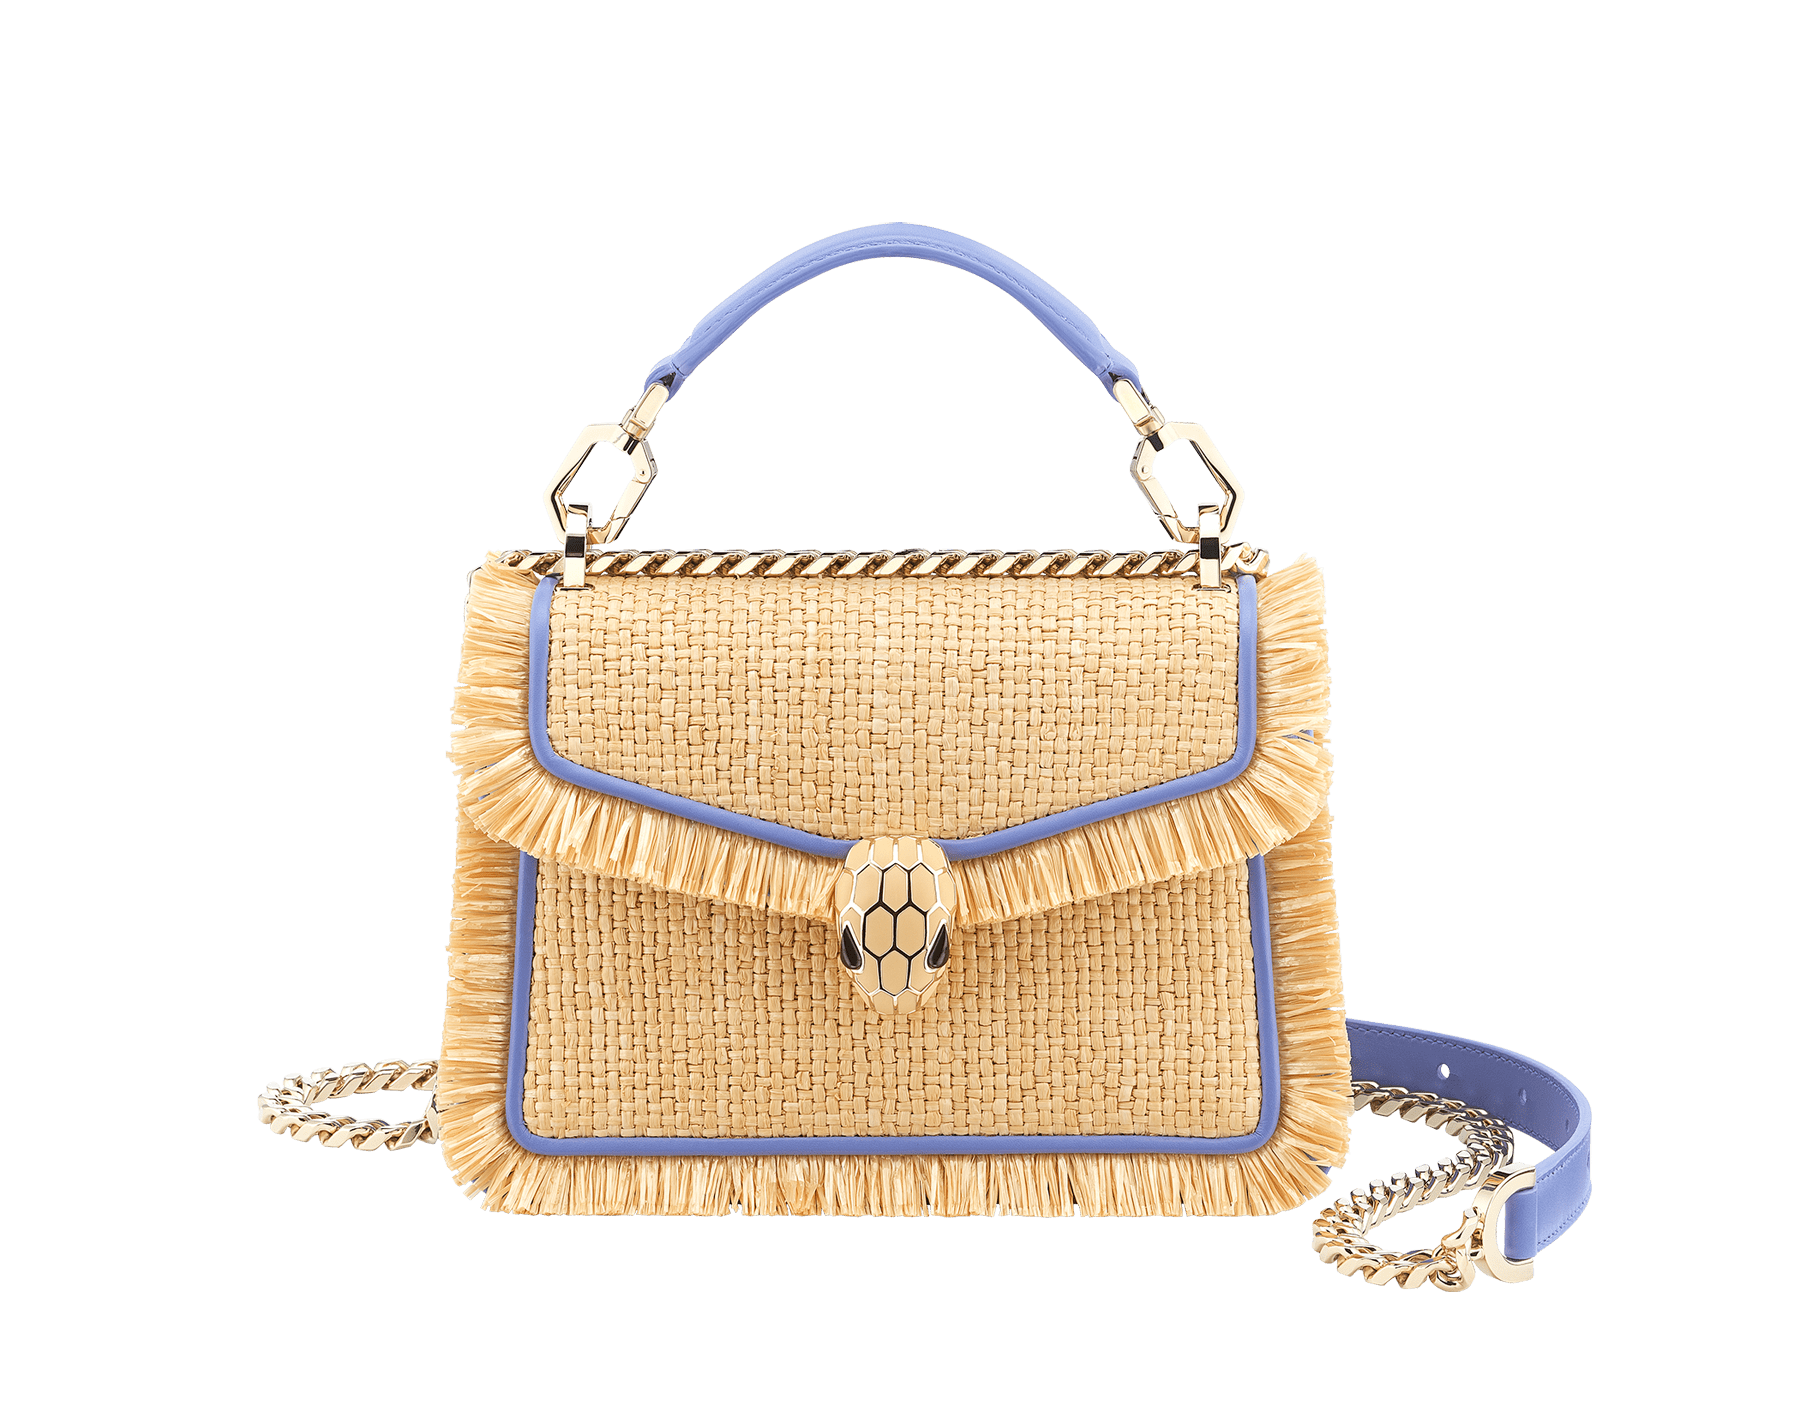 """""""Serpenti Diamond Blast"""" crossbody bag in beige raffia and Lavender Amethyst lilac calfskin frames finished with beige raffia fringes, and Lavender Amethyst lilac nappa leather internal lining. Alluring snakehead closure in light gold-plated brass, enhanced with full matte Natural beige enamel and black onyx eyes. 290907 image 1"""